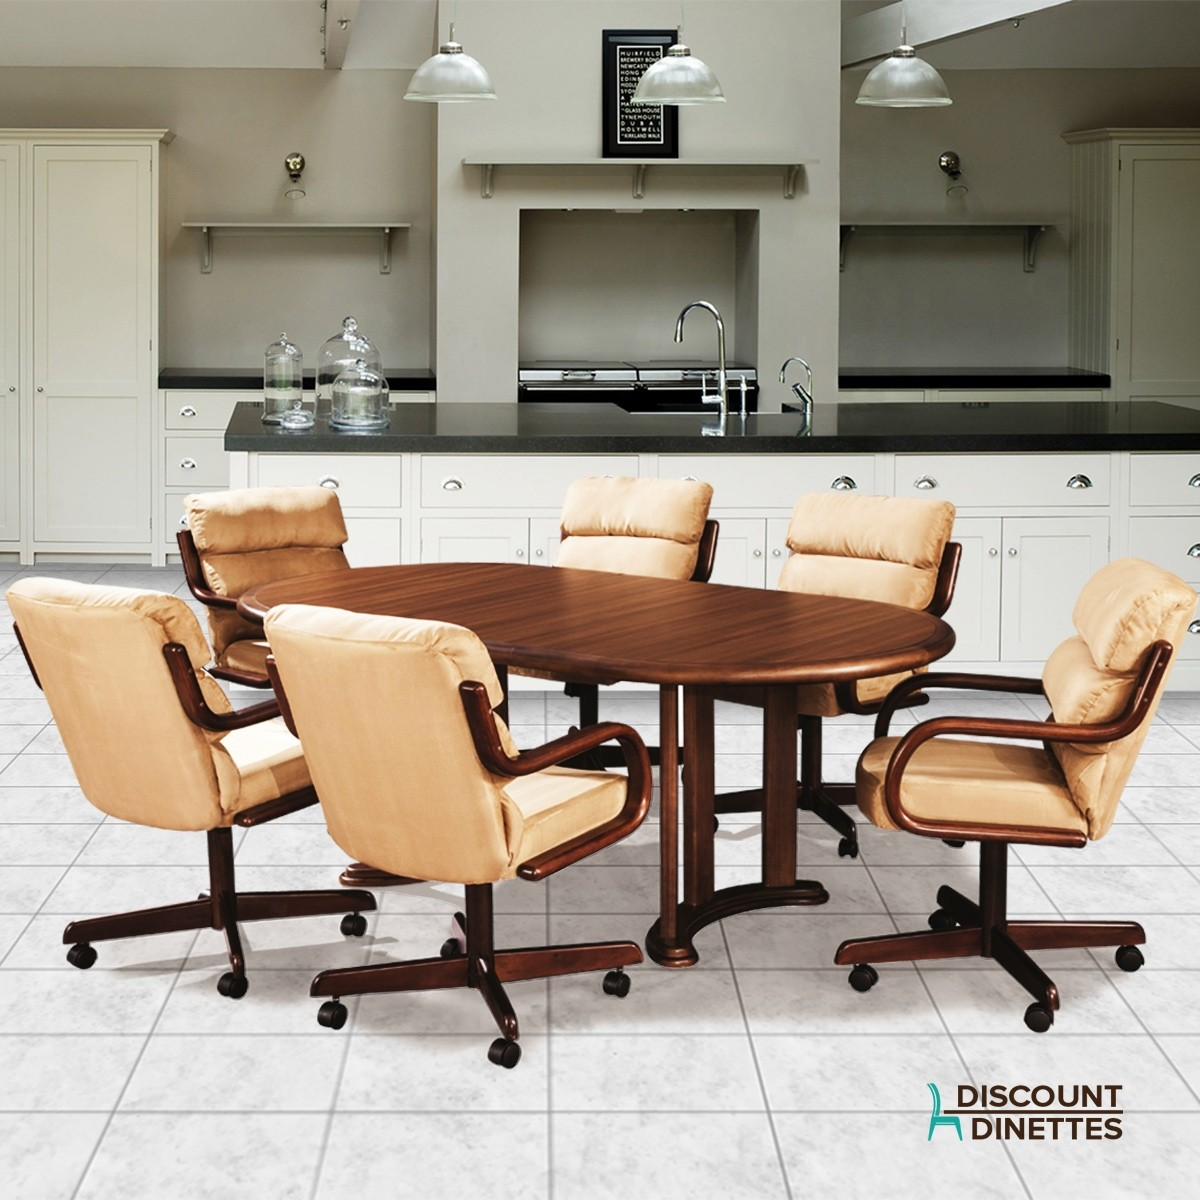 Kitchen Table With Chairs On Wheels: Douglas Casual Living Ashley Swivel Dining Set